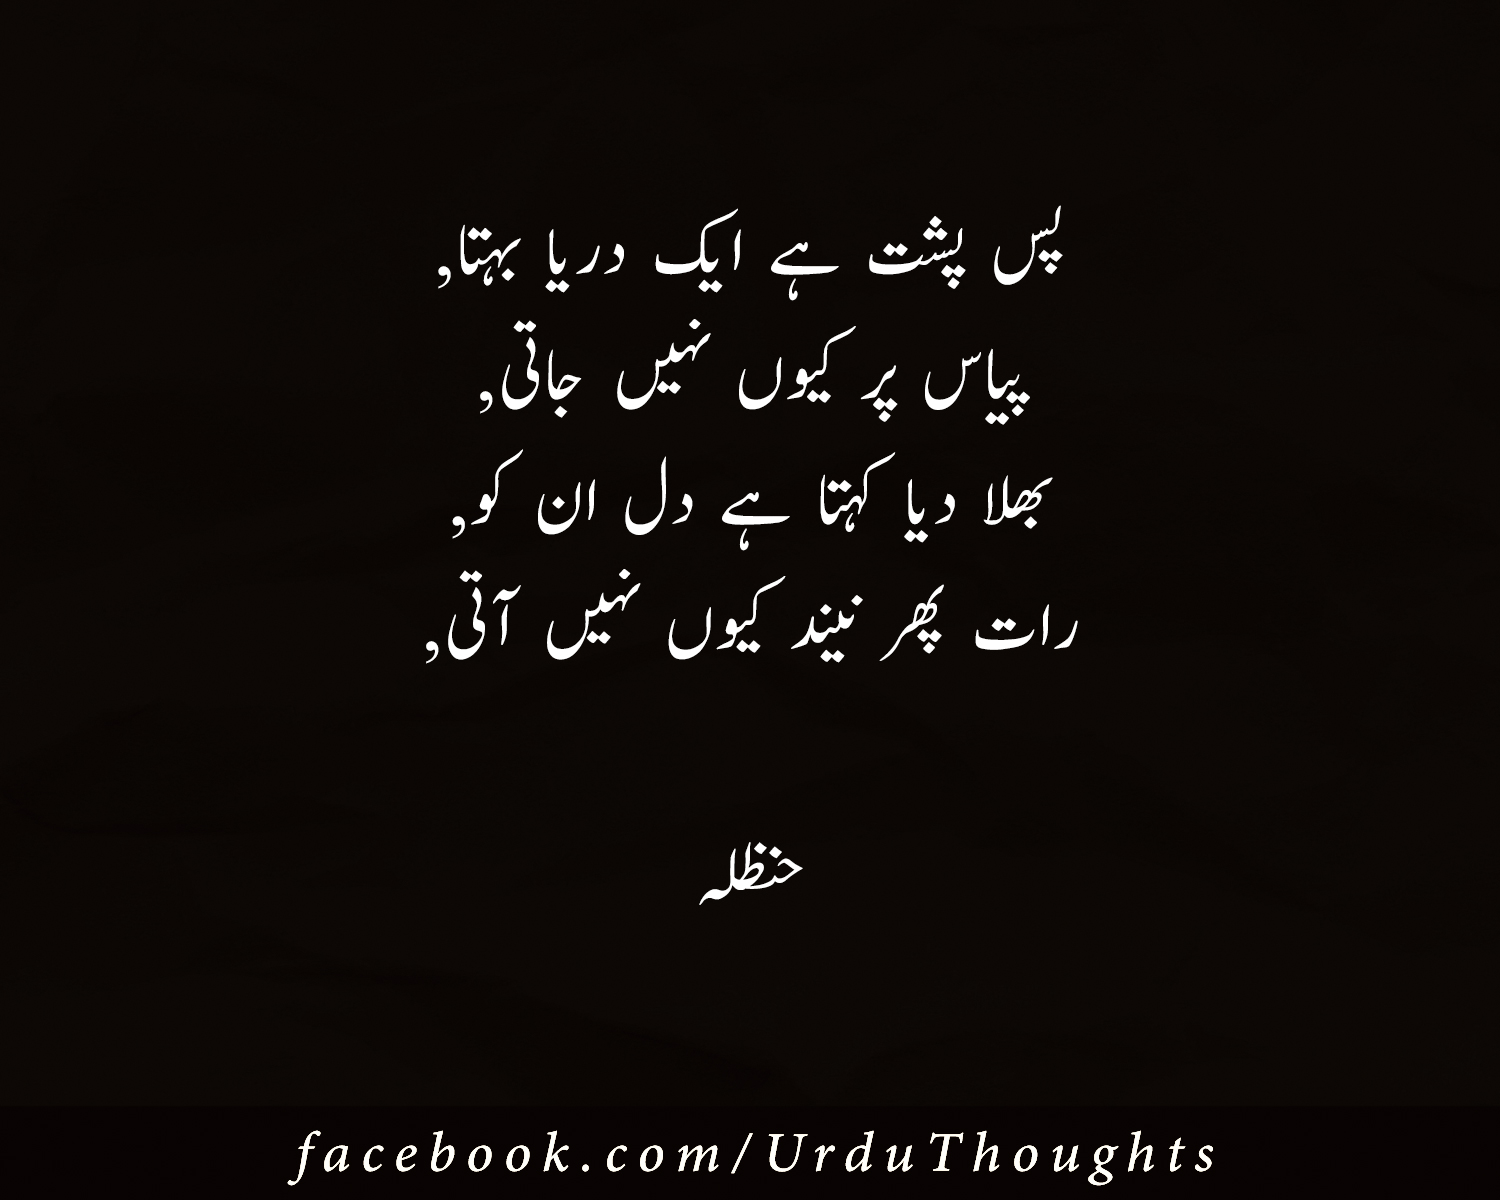 Beautiful Saying Quotes In Urdu Wallpapers Photos Urdu Thoughts